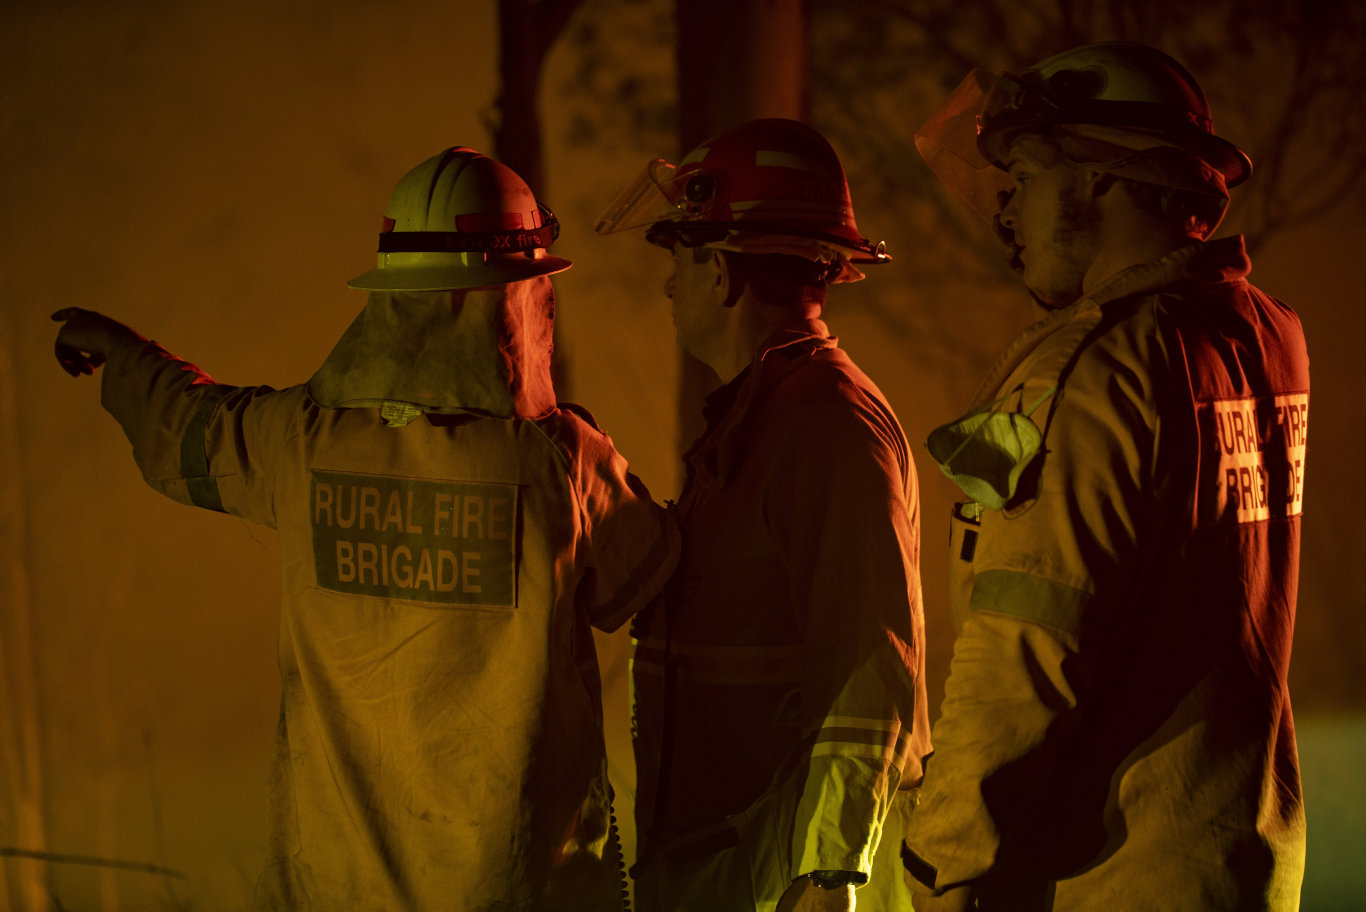 Firefighters assess the scene at the Pechey bushfire.